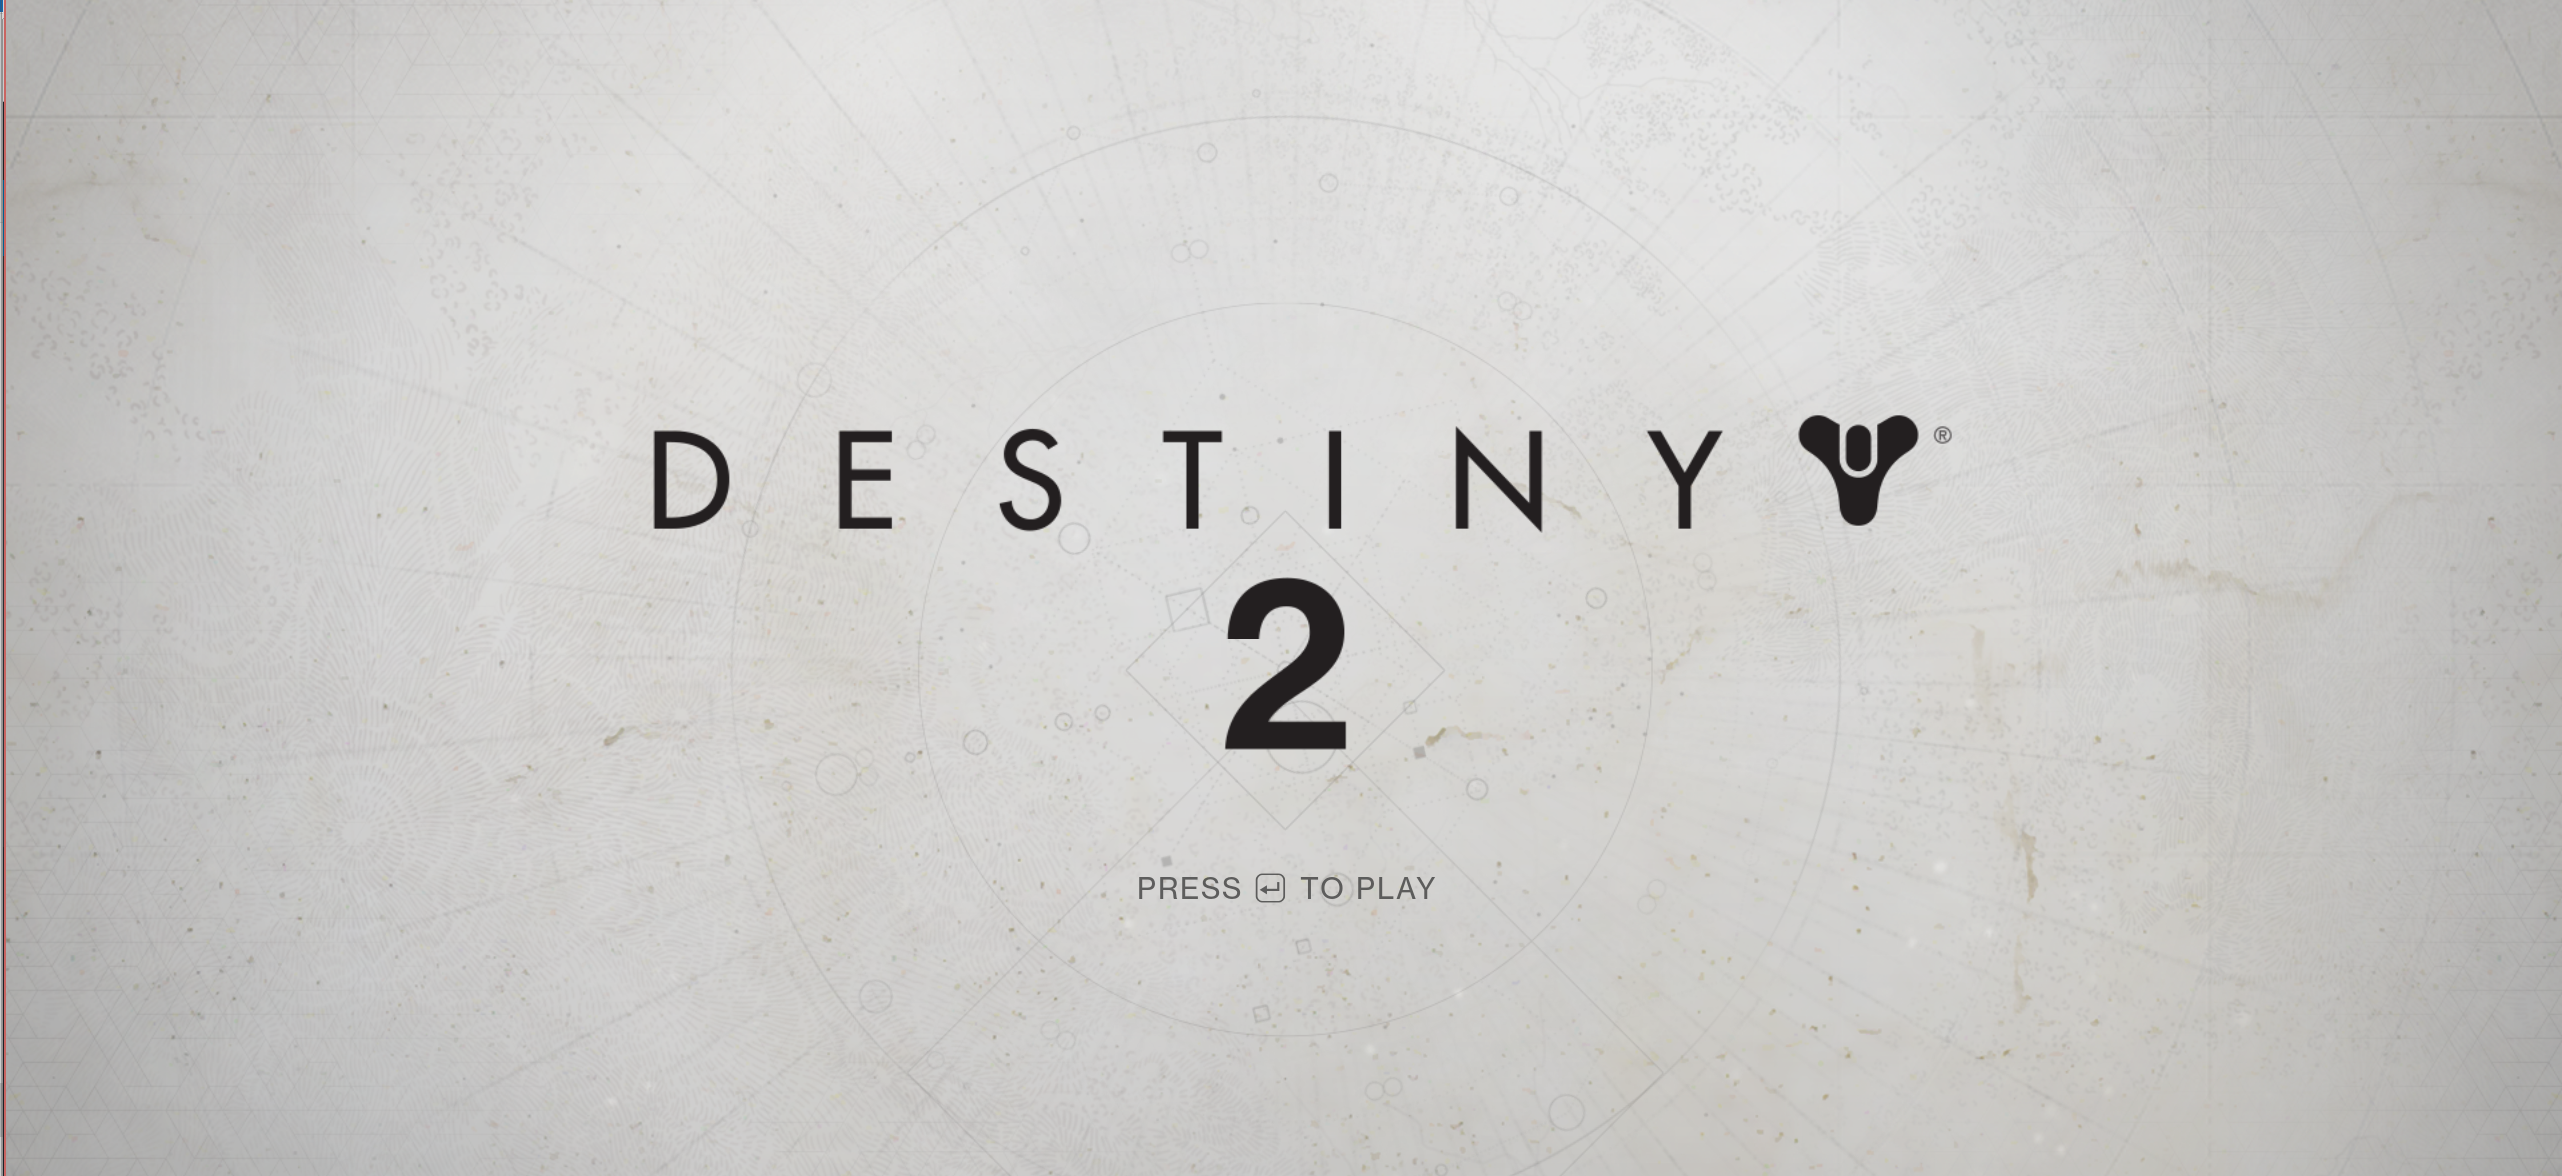 Waiting for Destiny 2 on PC just got harder thanks to a drool-worthy